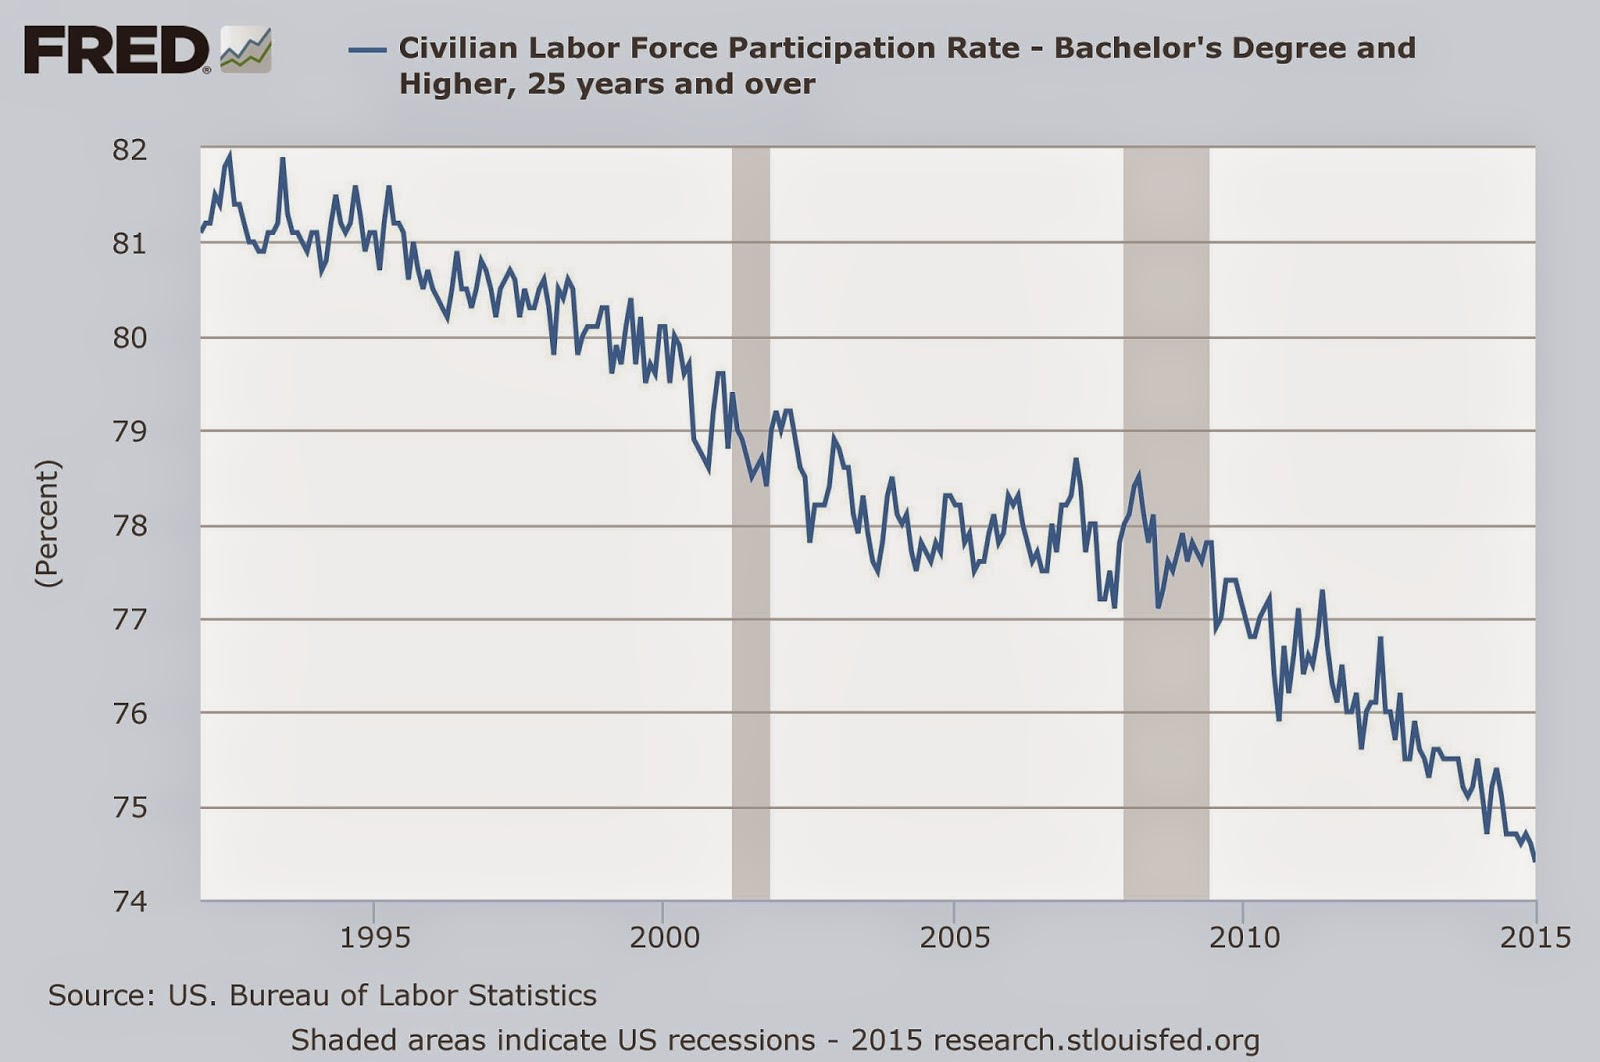 Workforce Participation Rate Of Bachelor Degree Holders